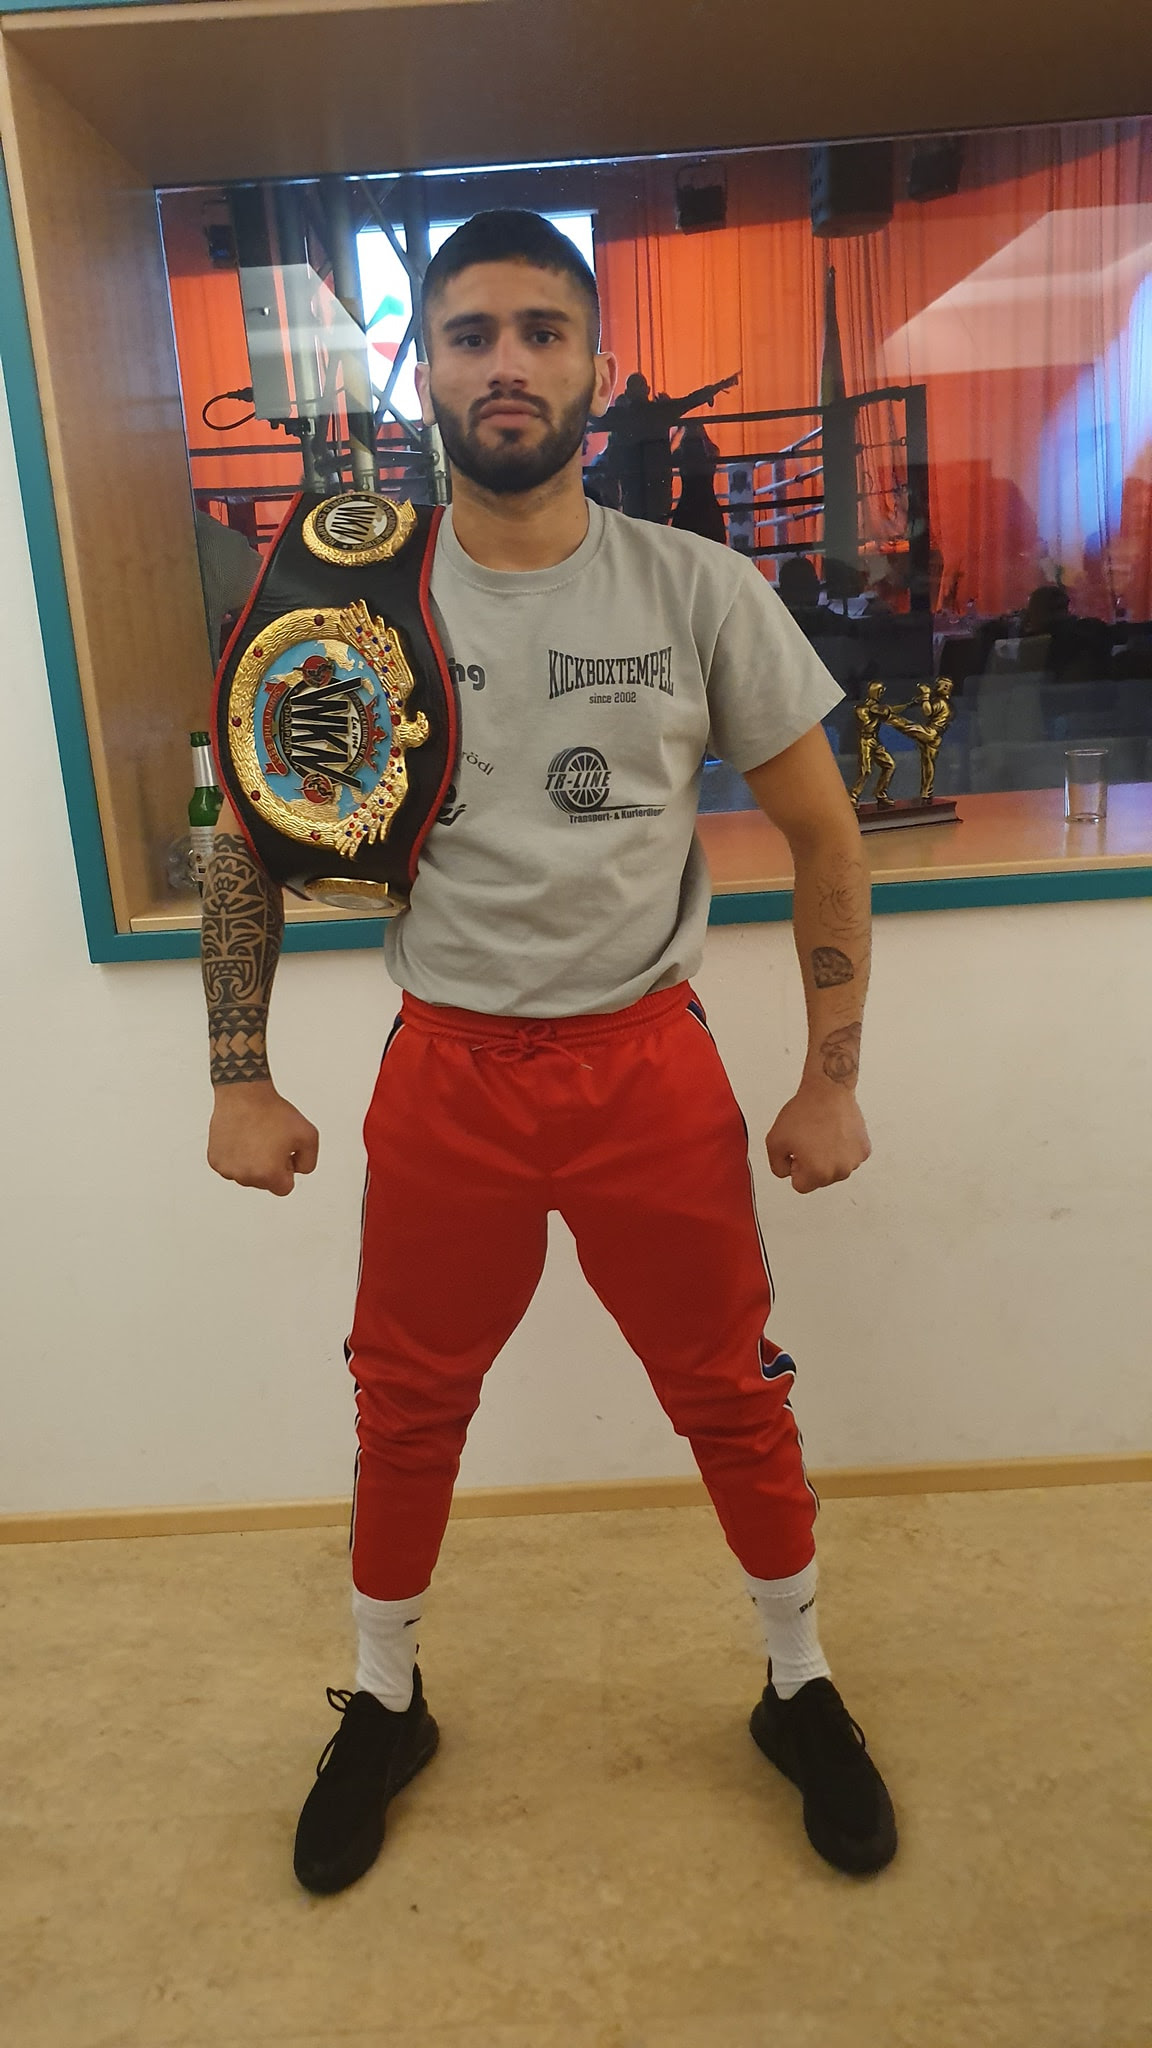 Jan Szajko earns WKN World Super Bantamweight title in Ingolstadt, Germany - Kickoxing